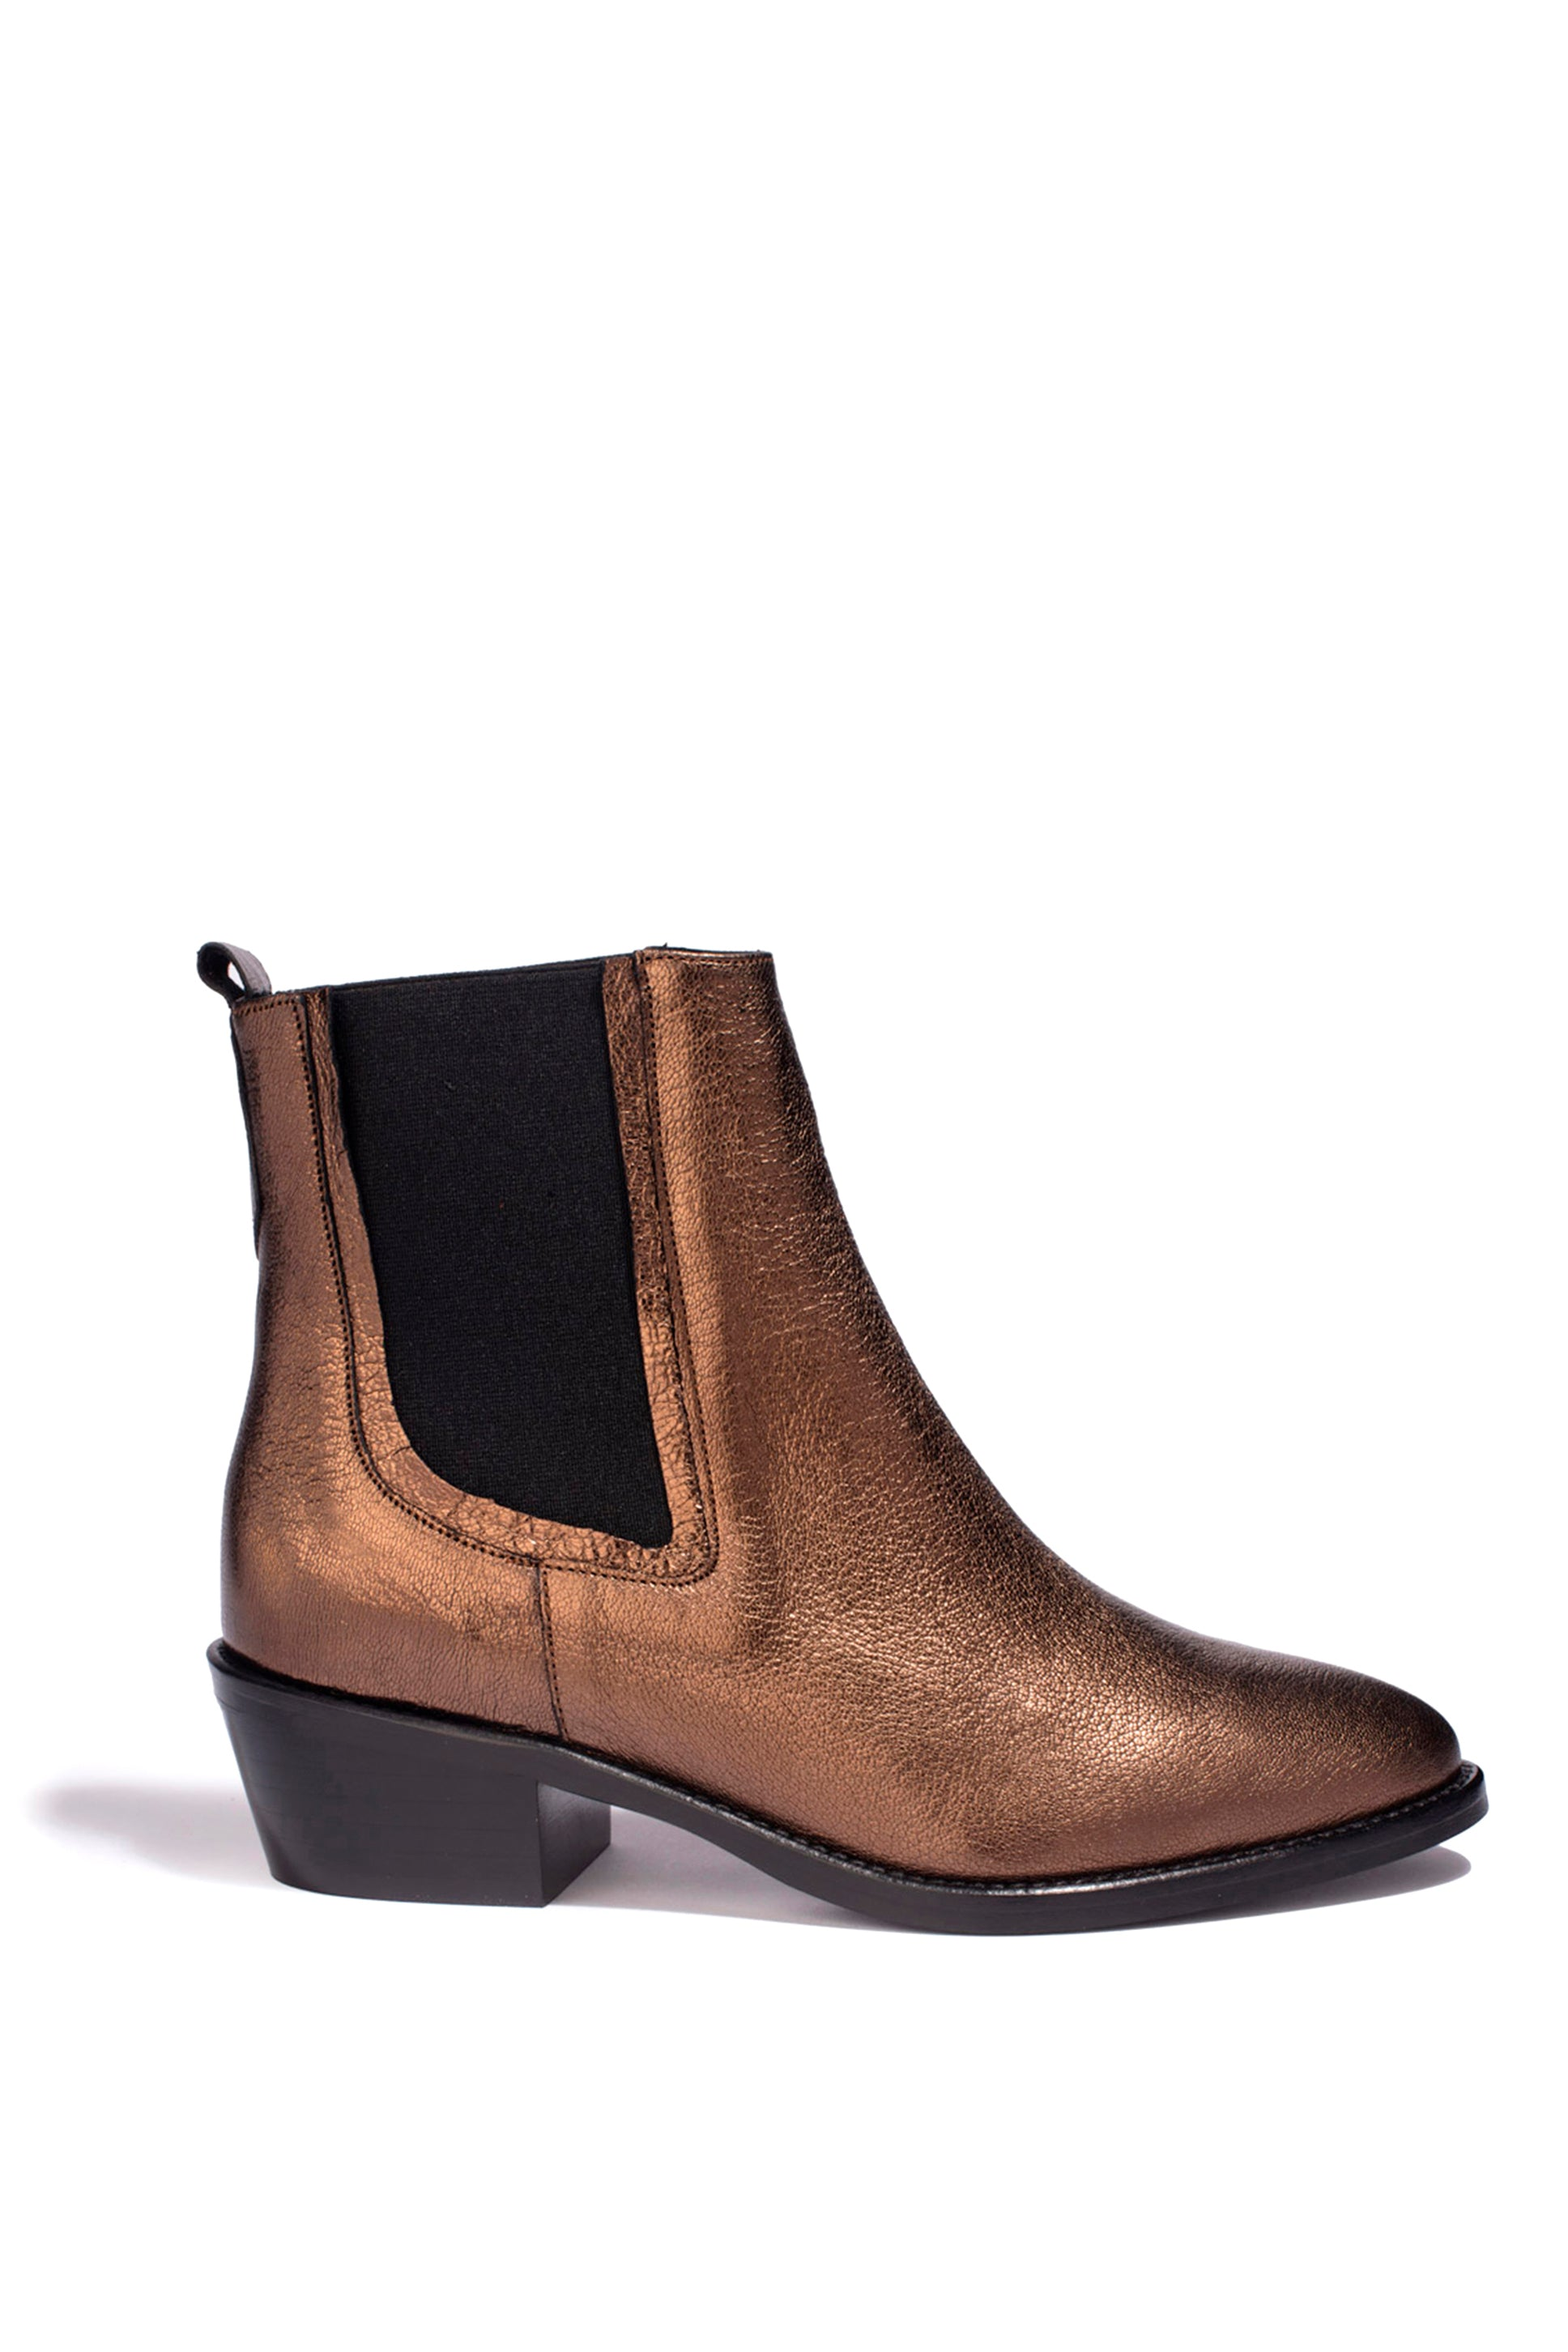 Bottines Clara Metal Stone - Anaki Paris